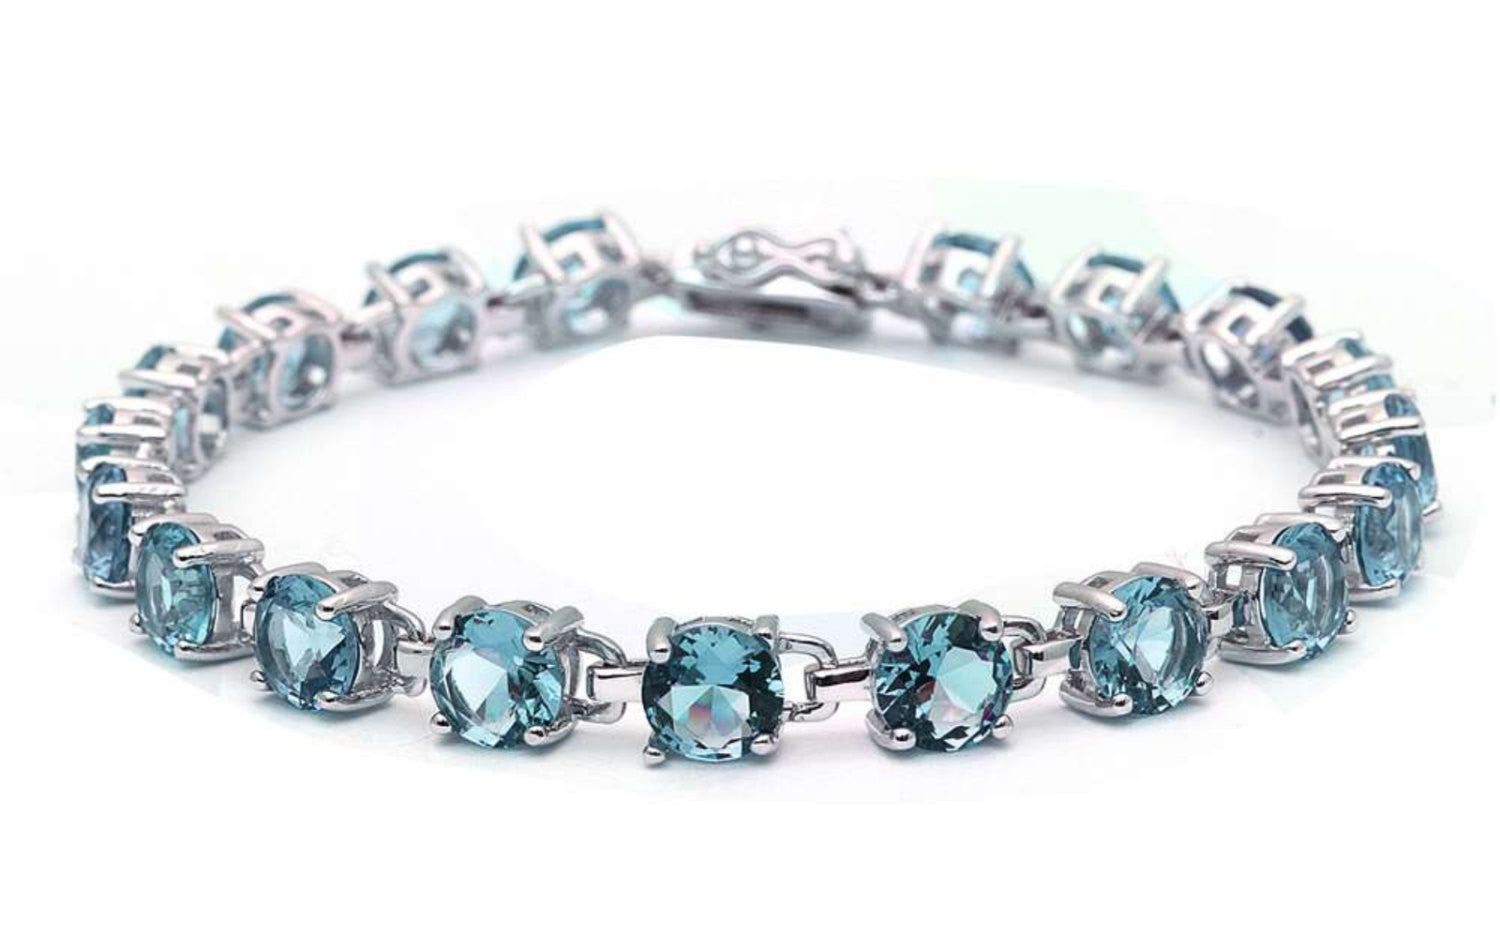 Classic Tennis Bracelet 16.5 Carat Round Cut Blue Aquamarine Solid 925 Sterling Silver Solitaire Wedding Engagement Tennis Bracelet Top Gift - Blue Apple Jewelry